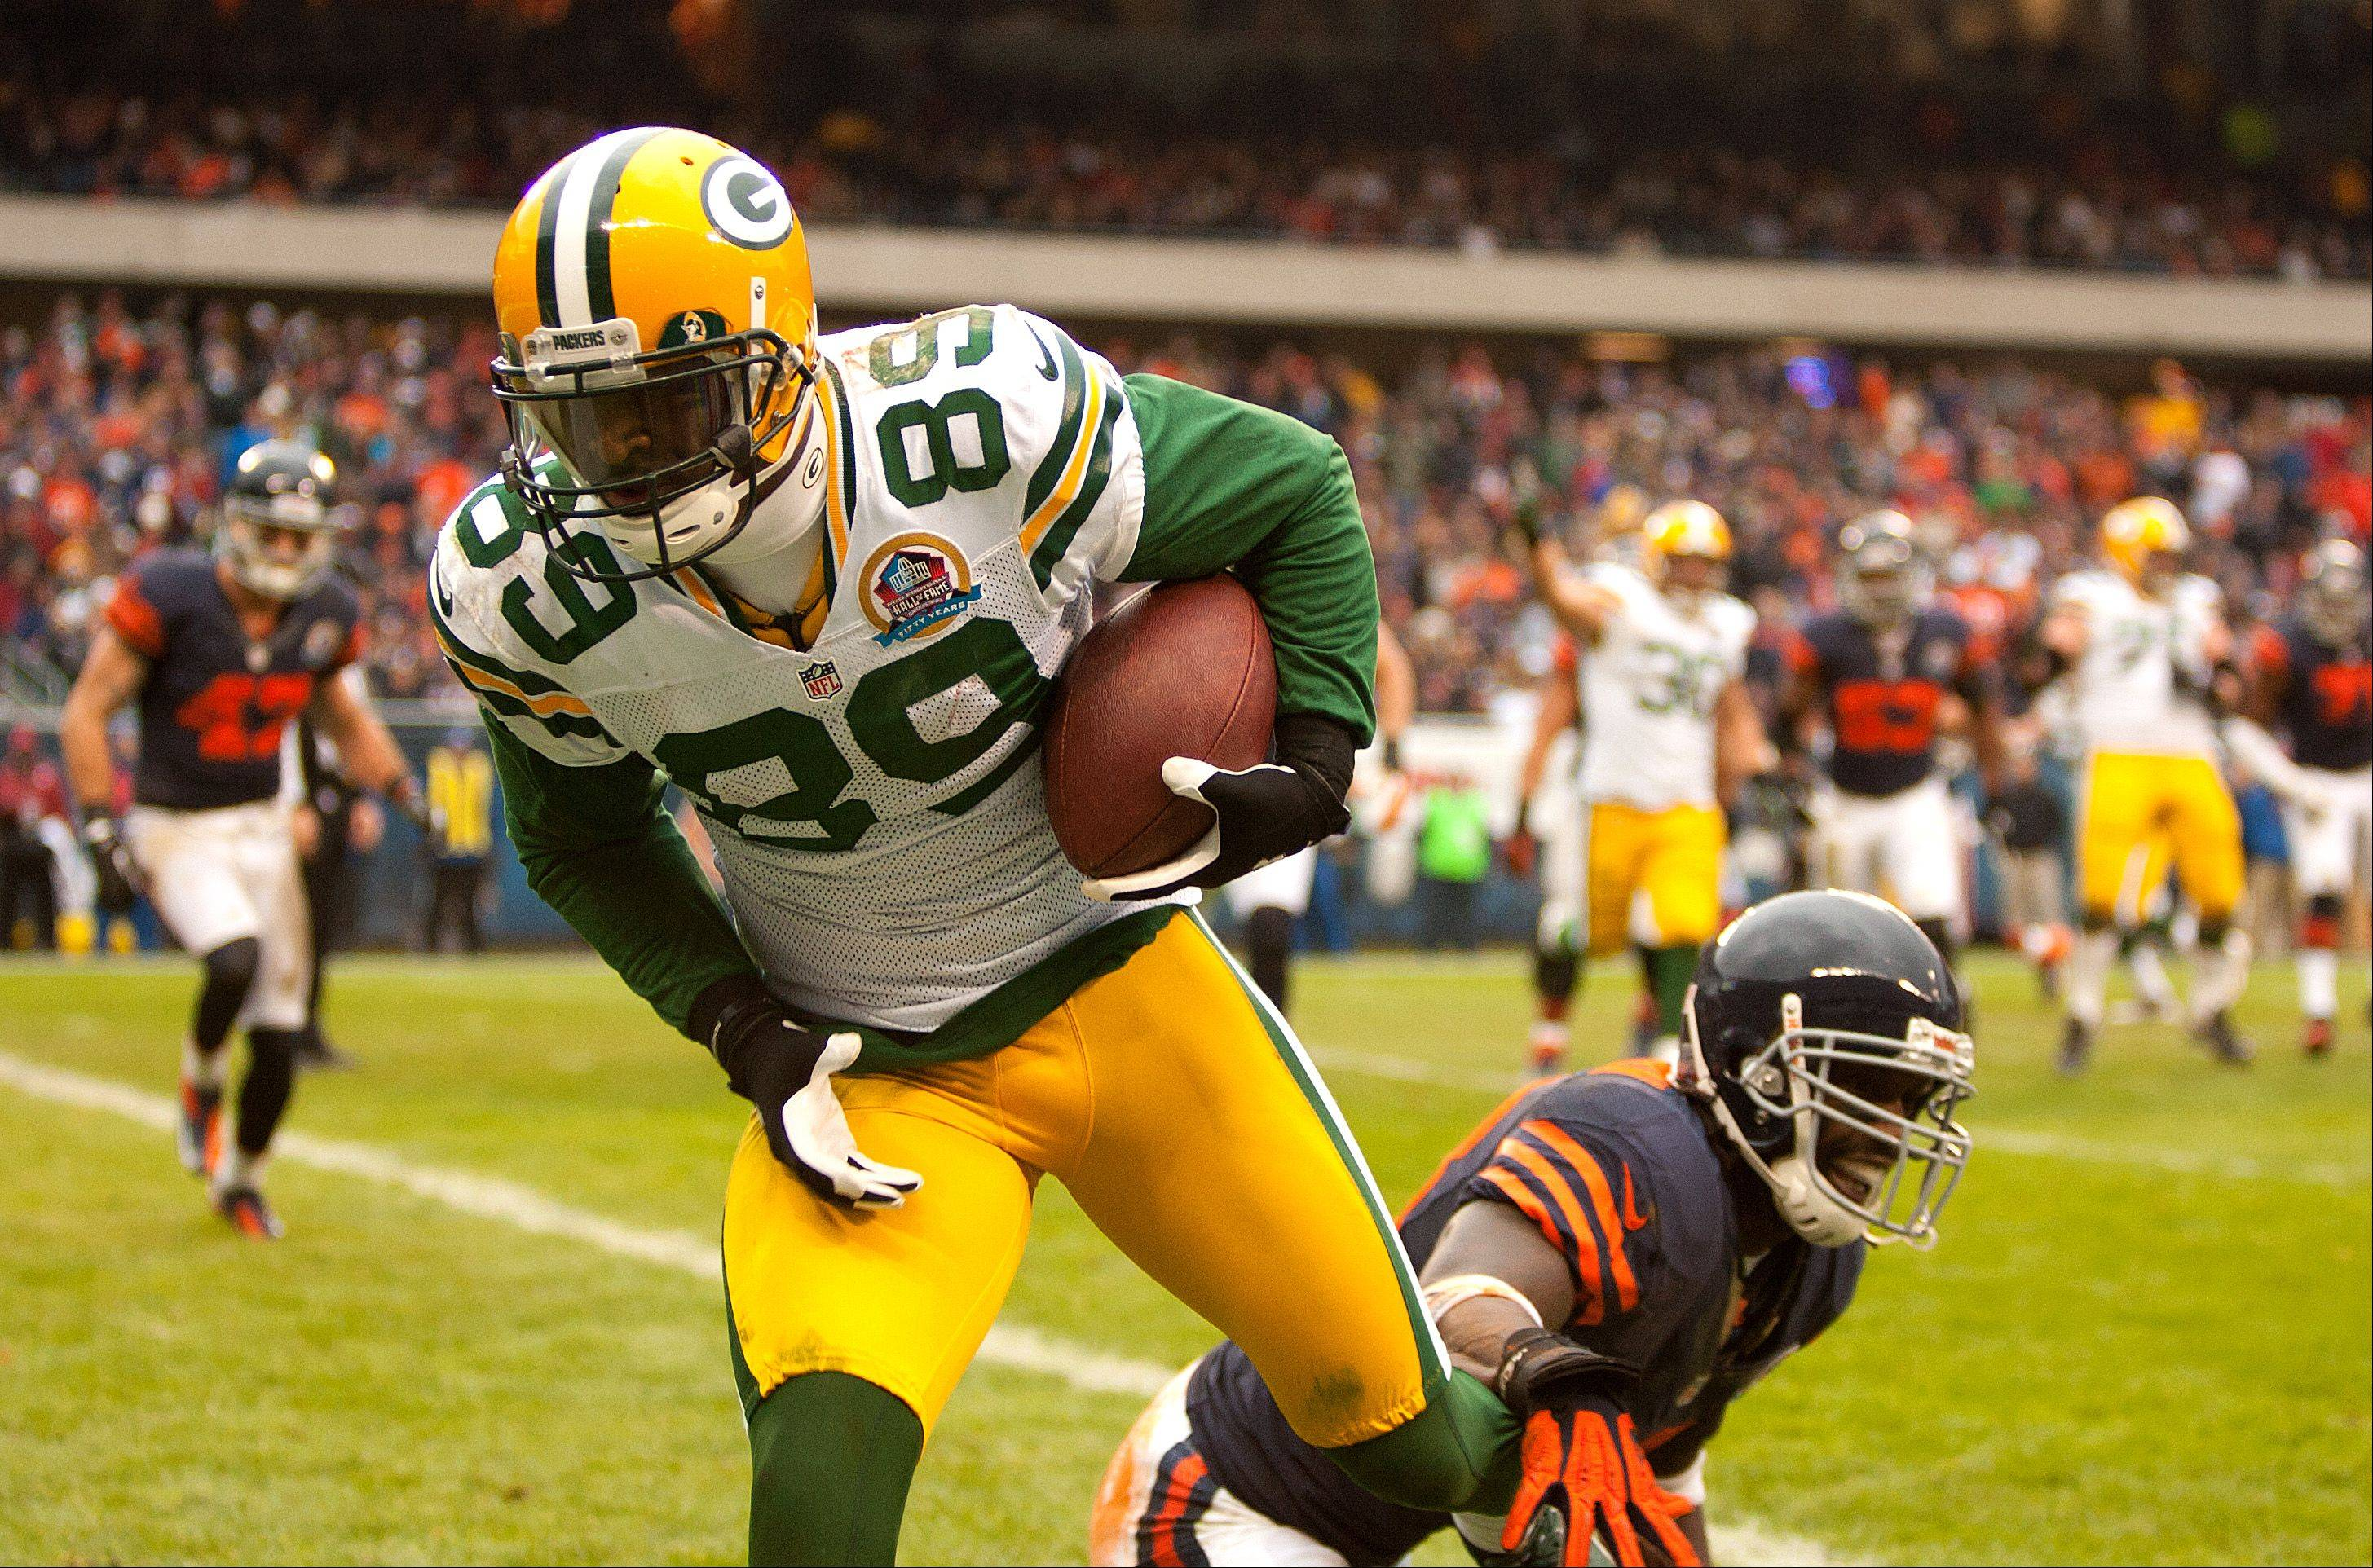 James Jones hauled in a whopping 14 TD passes last season from QB Aaron Rodgers.